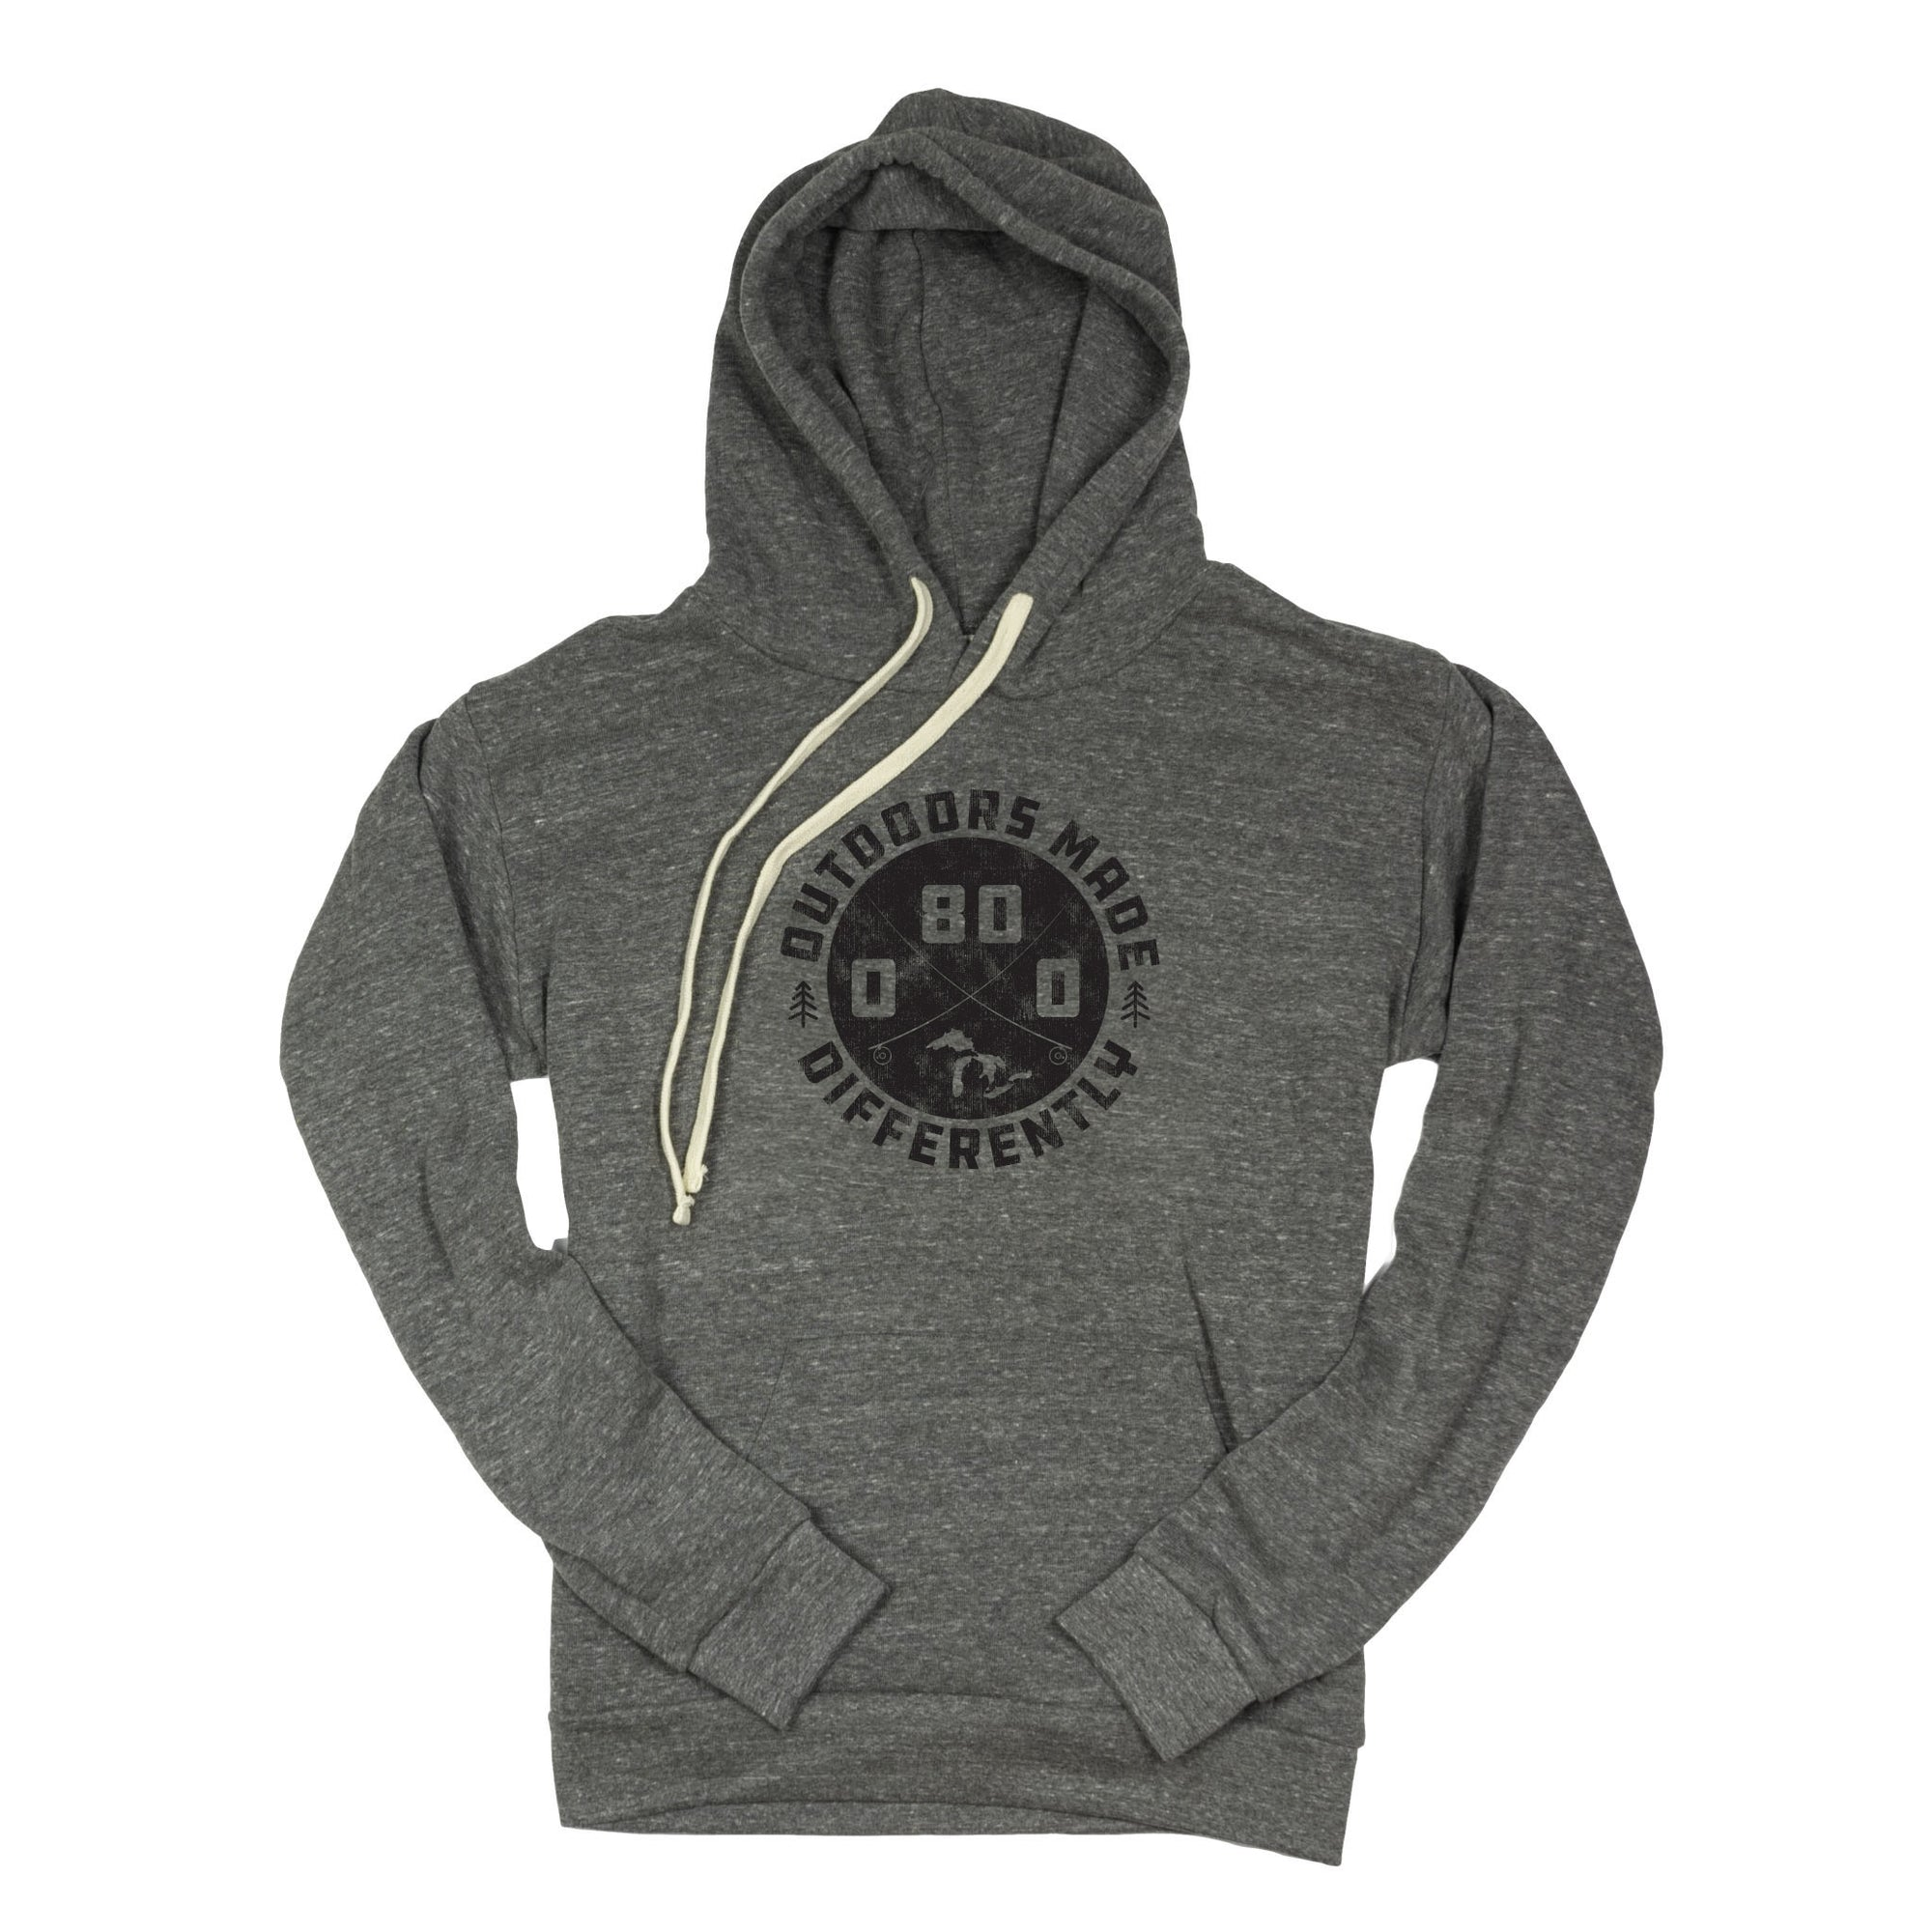 Outdoors Made Differently Triblend Pullover Hoodie